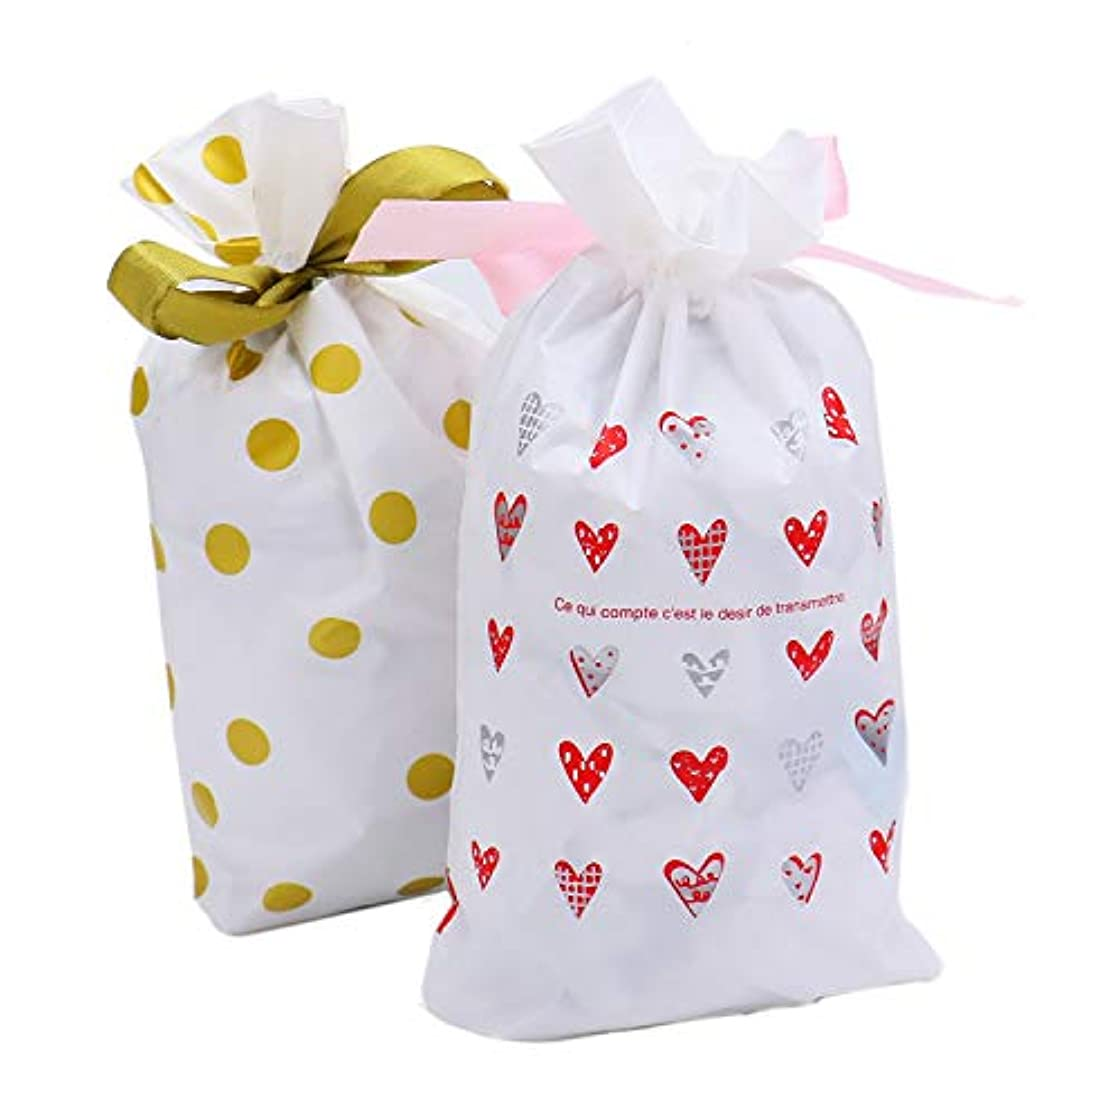 Monrocco 40pcs Treat Bags Party Favor Bags Plastic Drawstring Gift Bags, Candy Gift Wrap Bags with Twist Ties for Party Favors Supplies